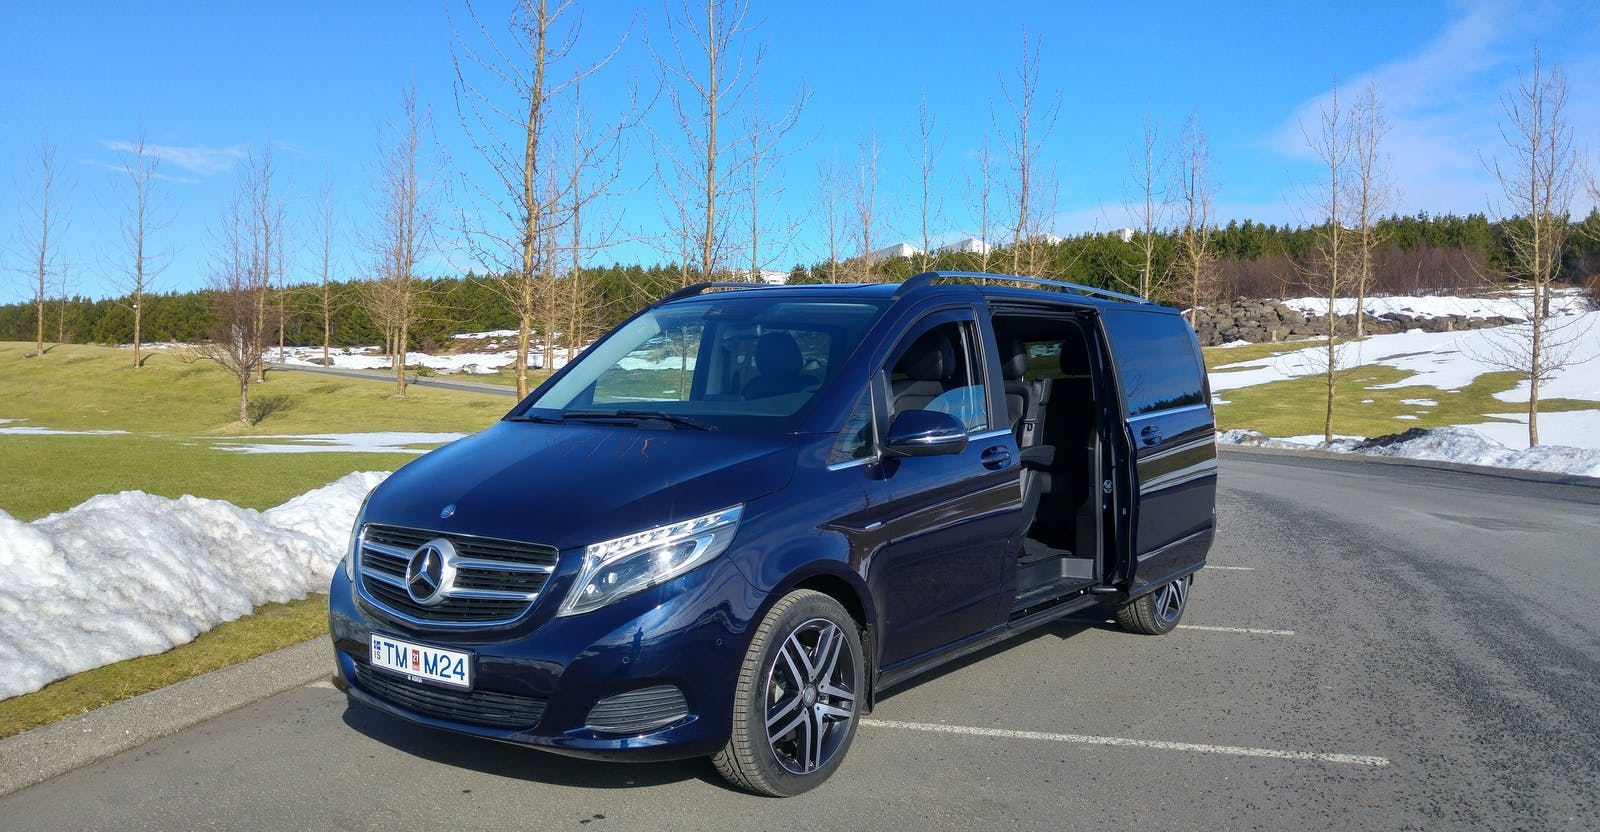 Luxurious Private Airport Transfer from Reykjavik to Keflavik International Airport